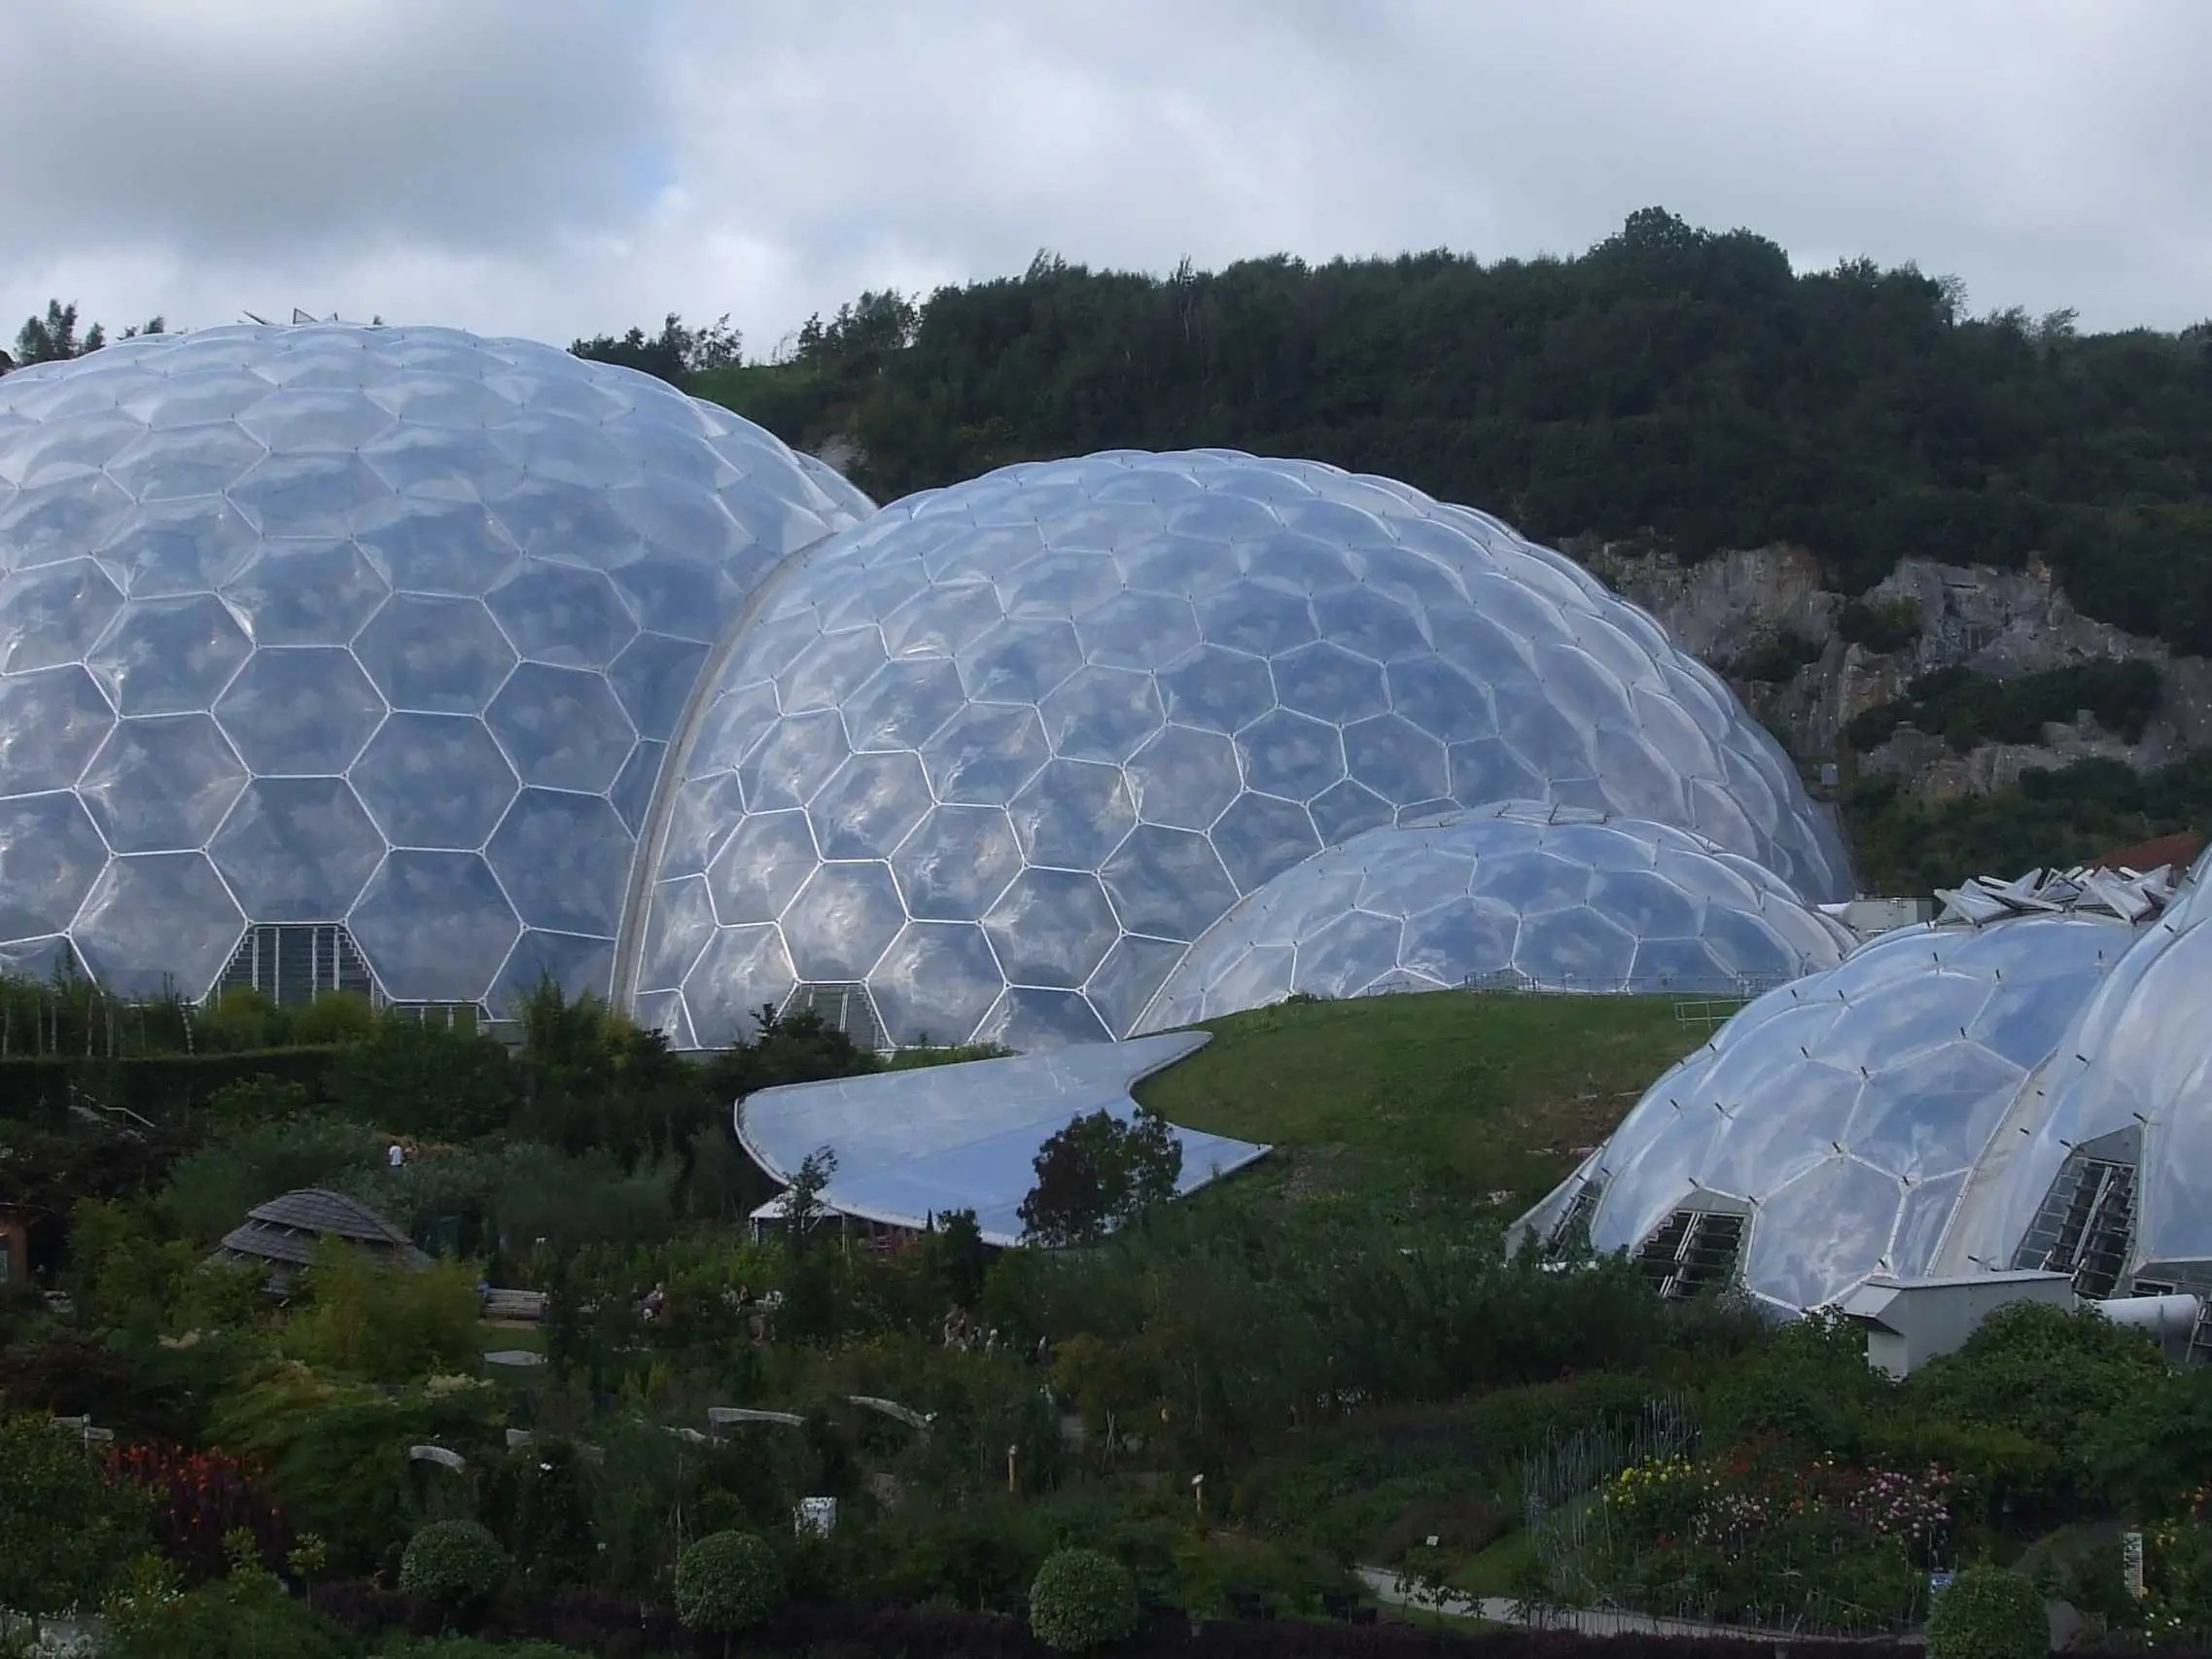 Explore the Eden Project, a pair of giant biomes that hold thousands of plant species from around the world in Cornwall, England.